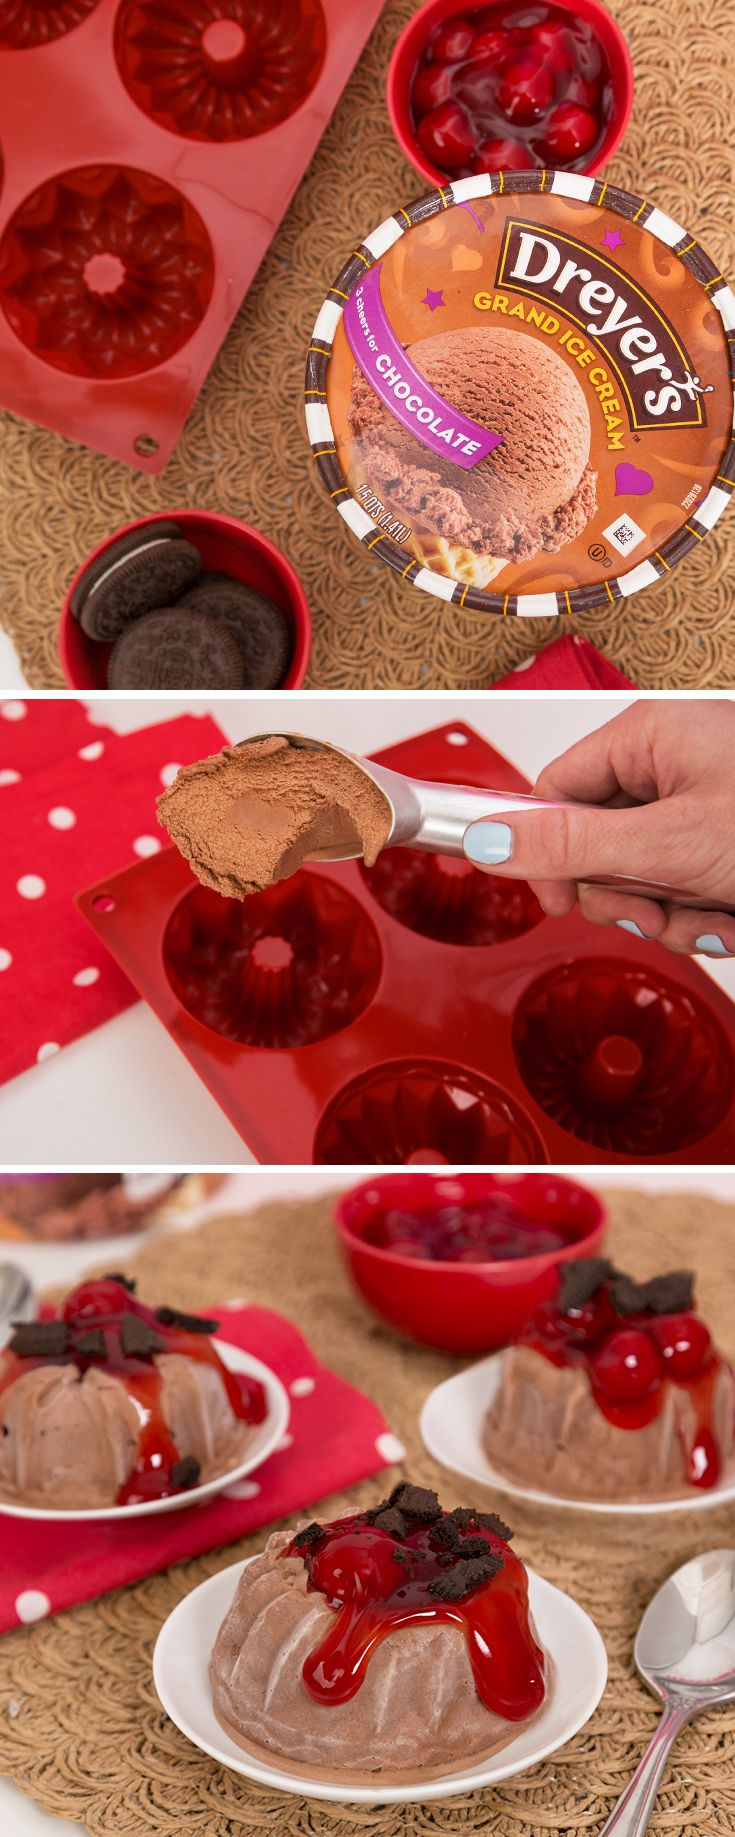 "Dreyer's Mini Ice Cream Volcanoes: Your kids will erupt with excitement when they help you make these tasty, back-to-school-inspired frozen treats! Simply take a mini bundt cake pan and mold Dreyer's Chocolate Grand Ice Cream into it. After freezing the ice cream, pop them out of the pan. Craving cherries this season? Before serving, pour cherry pie filling over the top to create the volcano ""lava"" and add cookie crumbles to be the ""dirt"" of the volcano."